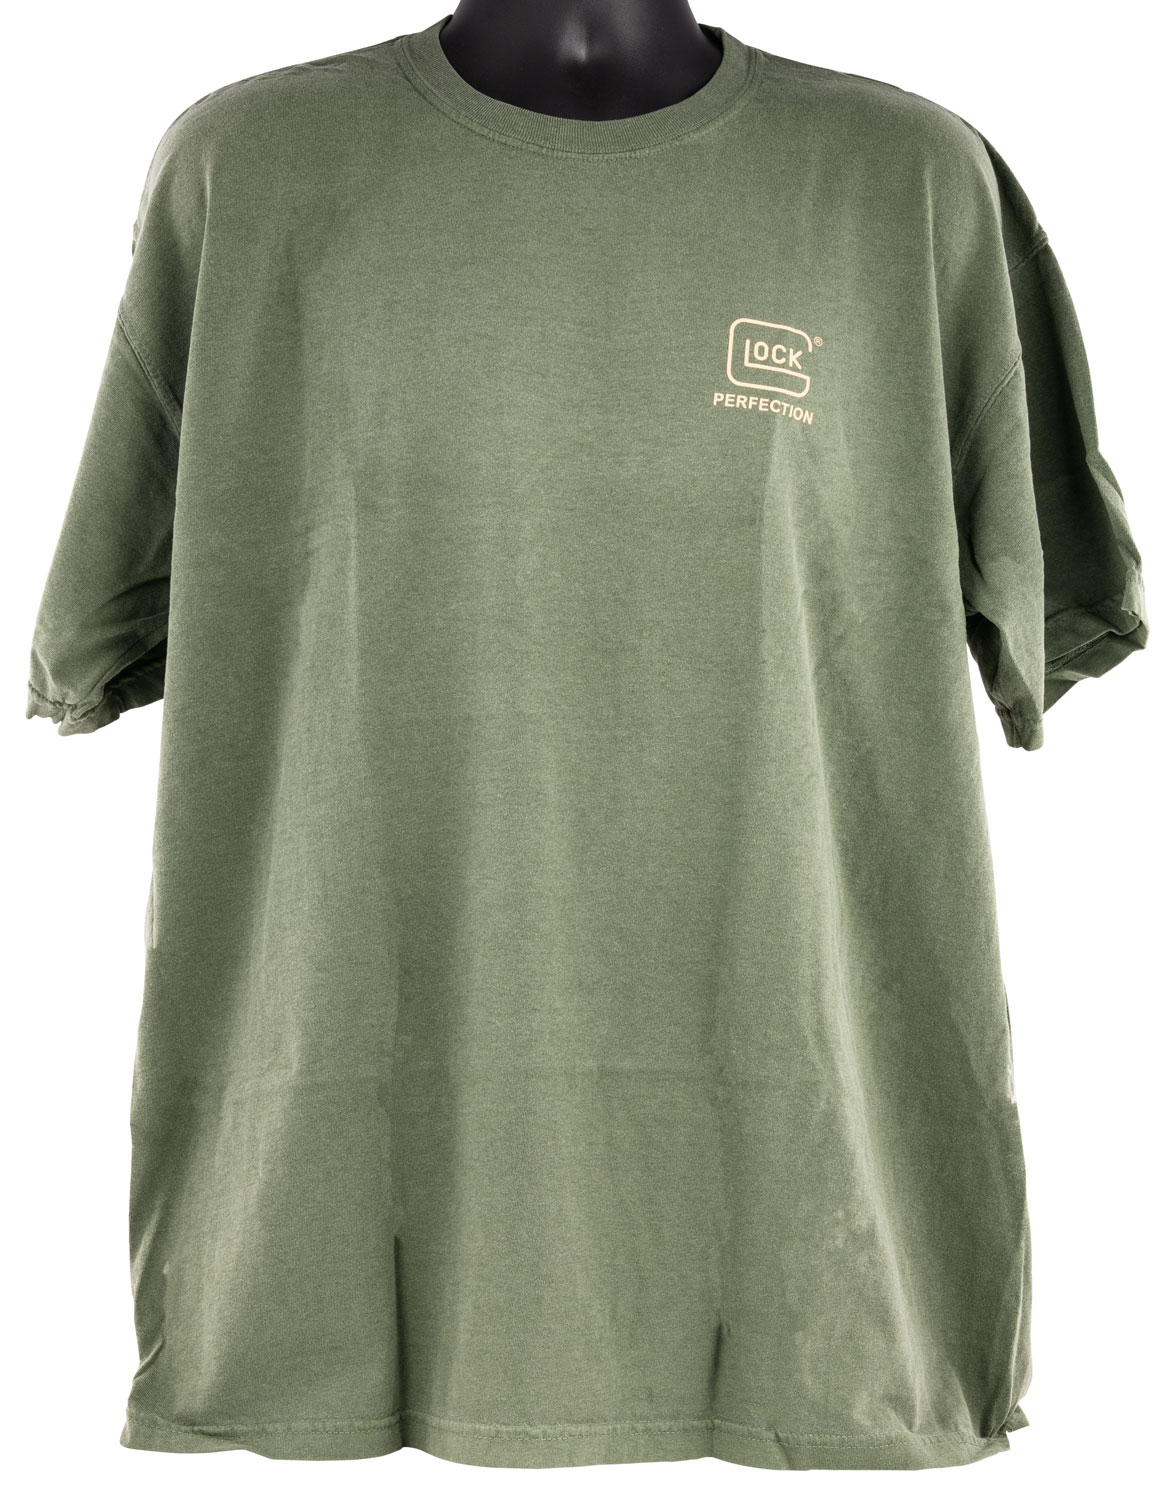 Glock AA75154 Perfection  Green 3XL Short Sleeve